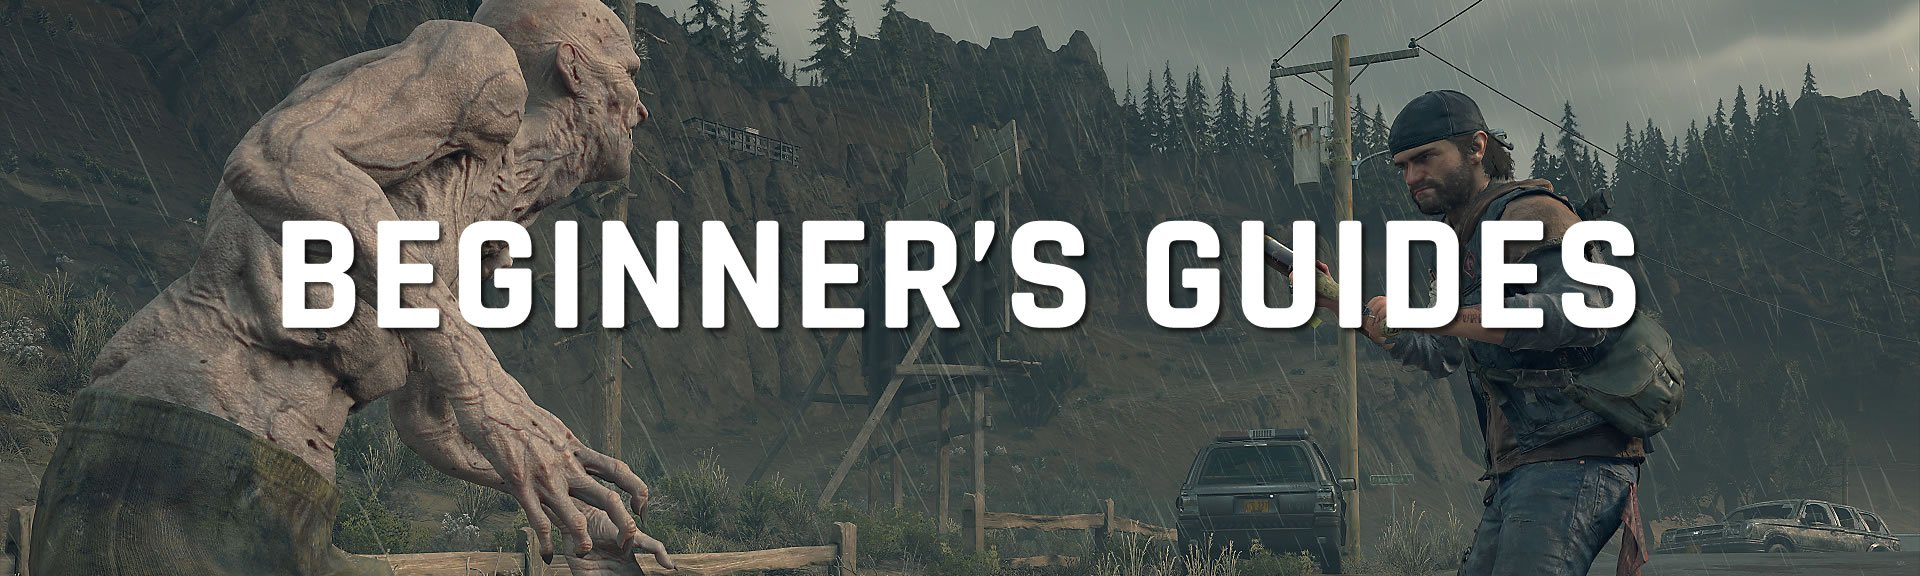 Days Gone beginner's guides